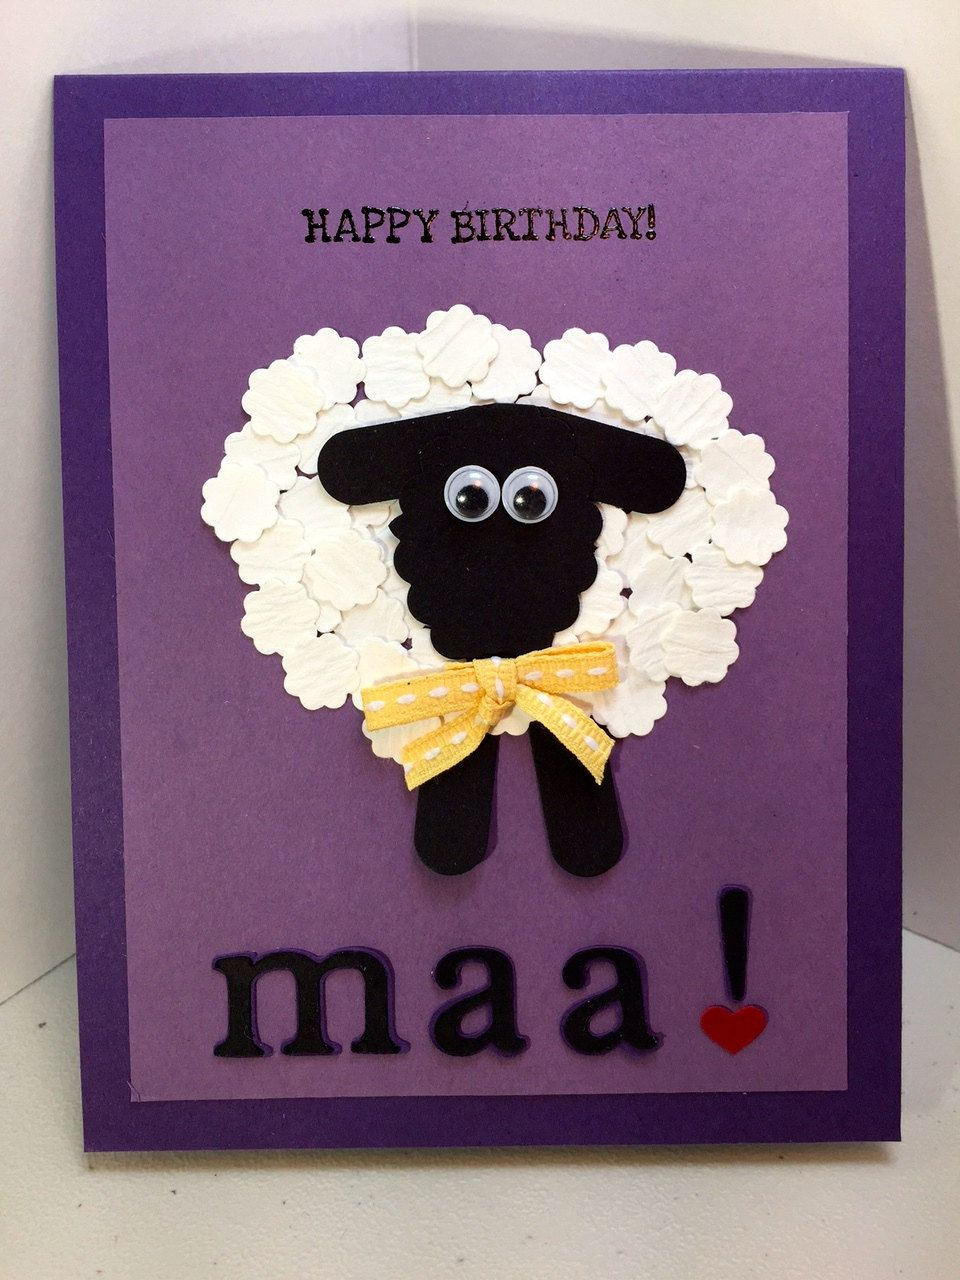 Happy Birthday Maa Humerous Handmade Card For Mom Purple With Sheep Stampin Up Products By TreasuresForACure On Etsy